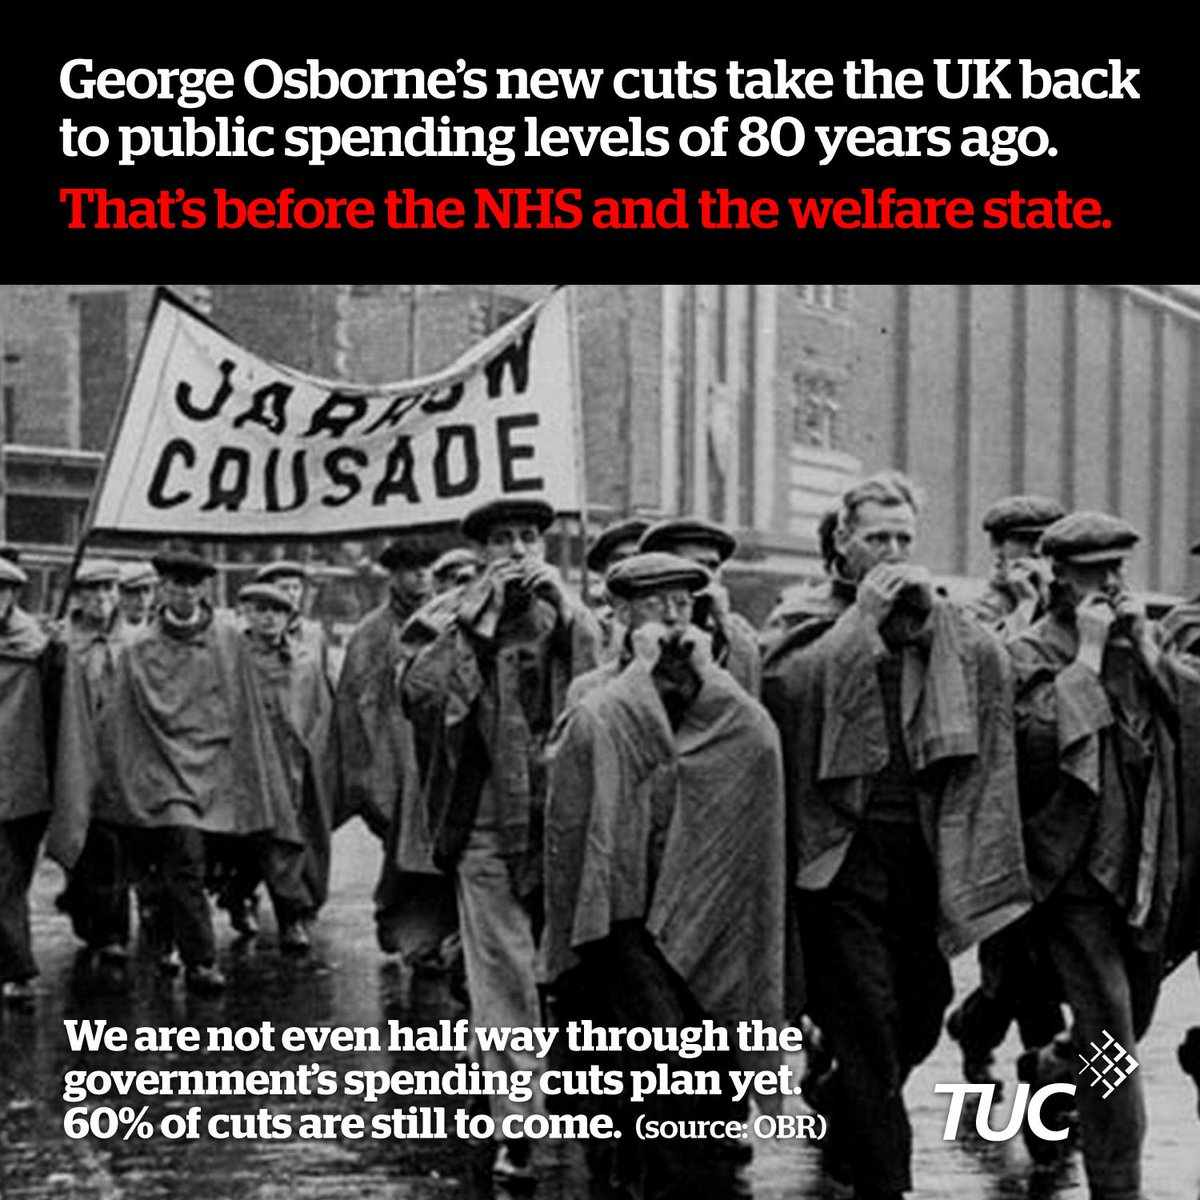 Cuts announced in #AutumnStatement will take UK back 80 years in public spending - to before the NHS & welfare state http://t.co/PawCTClsmk